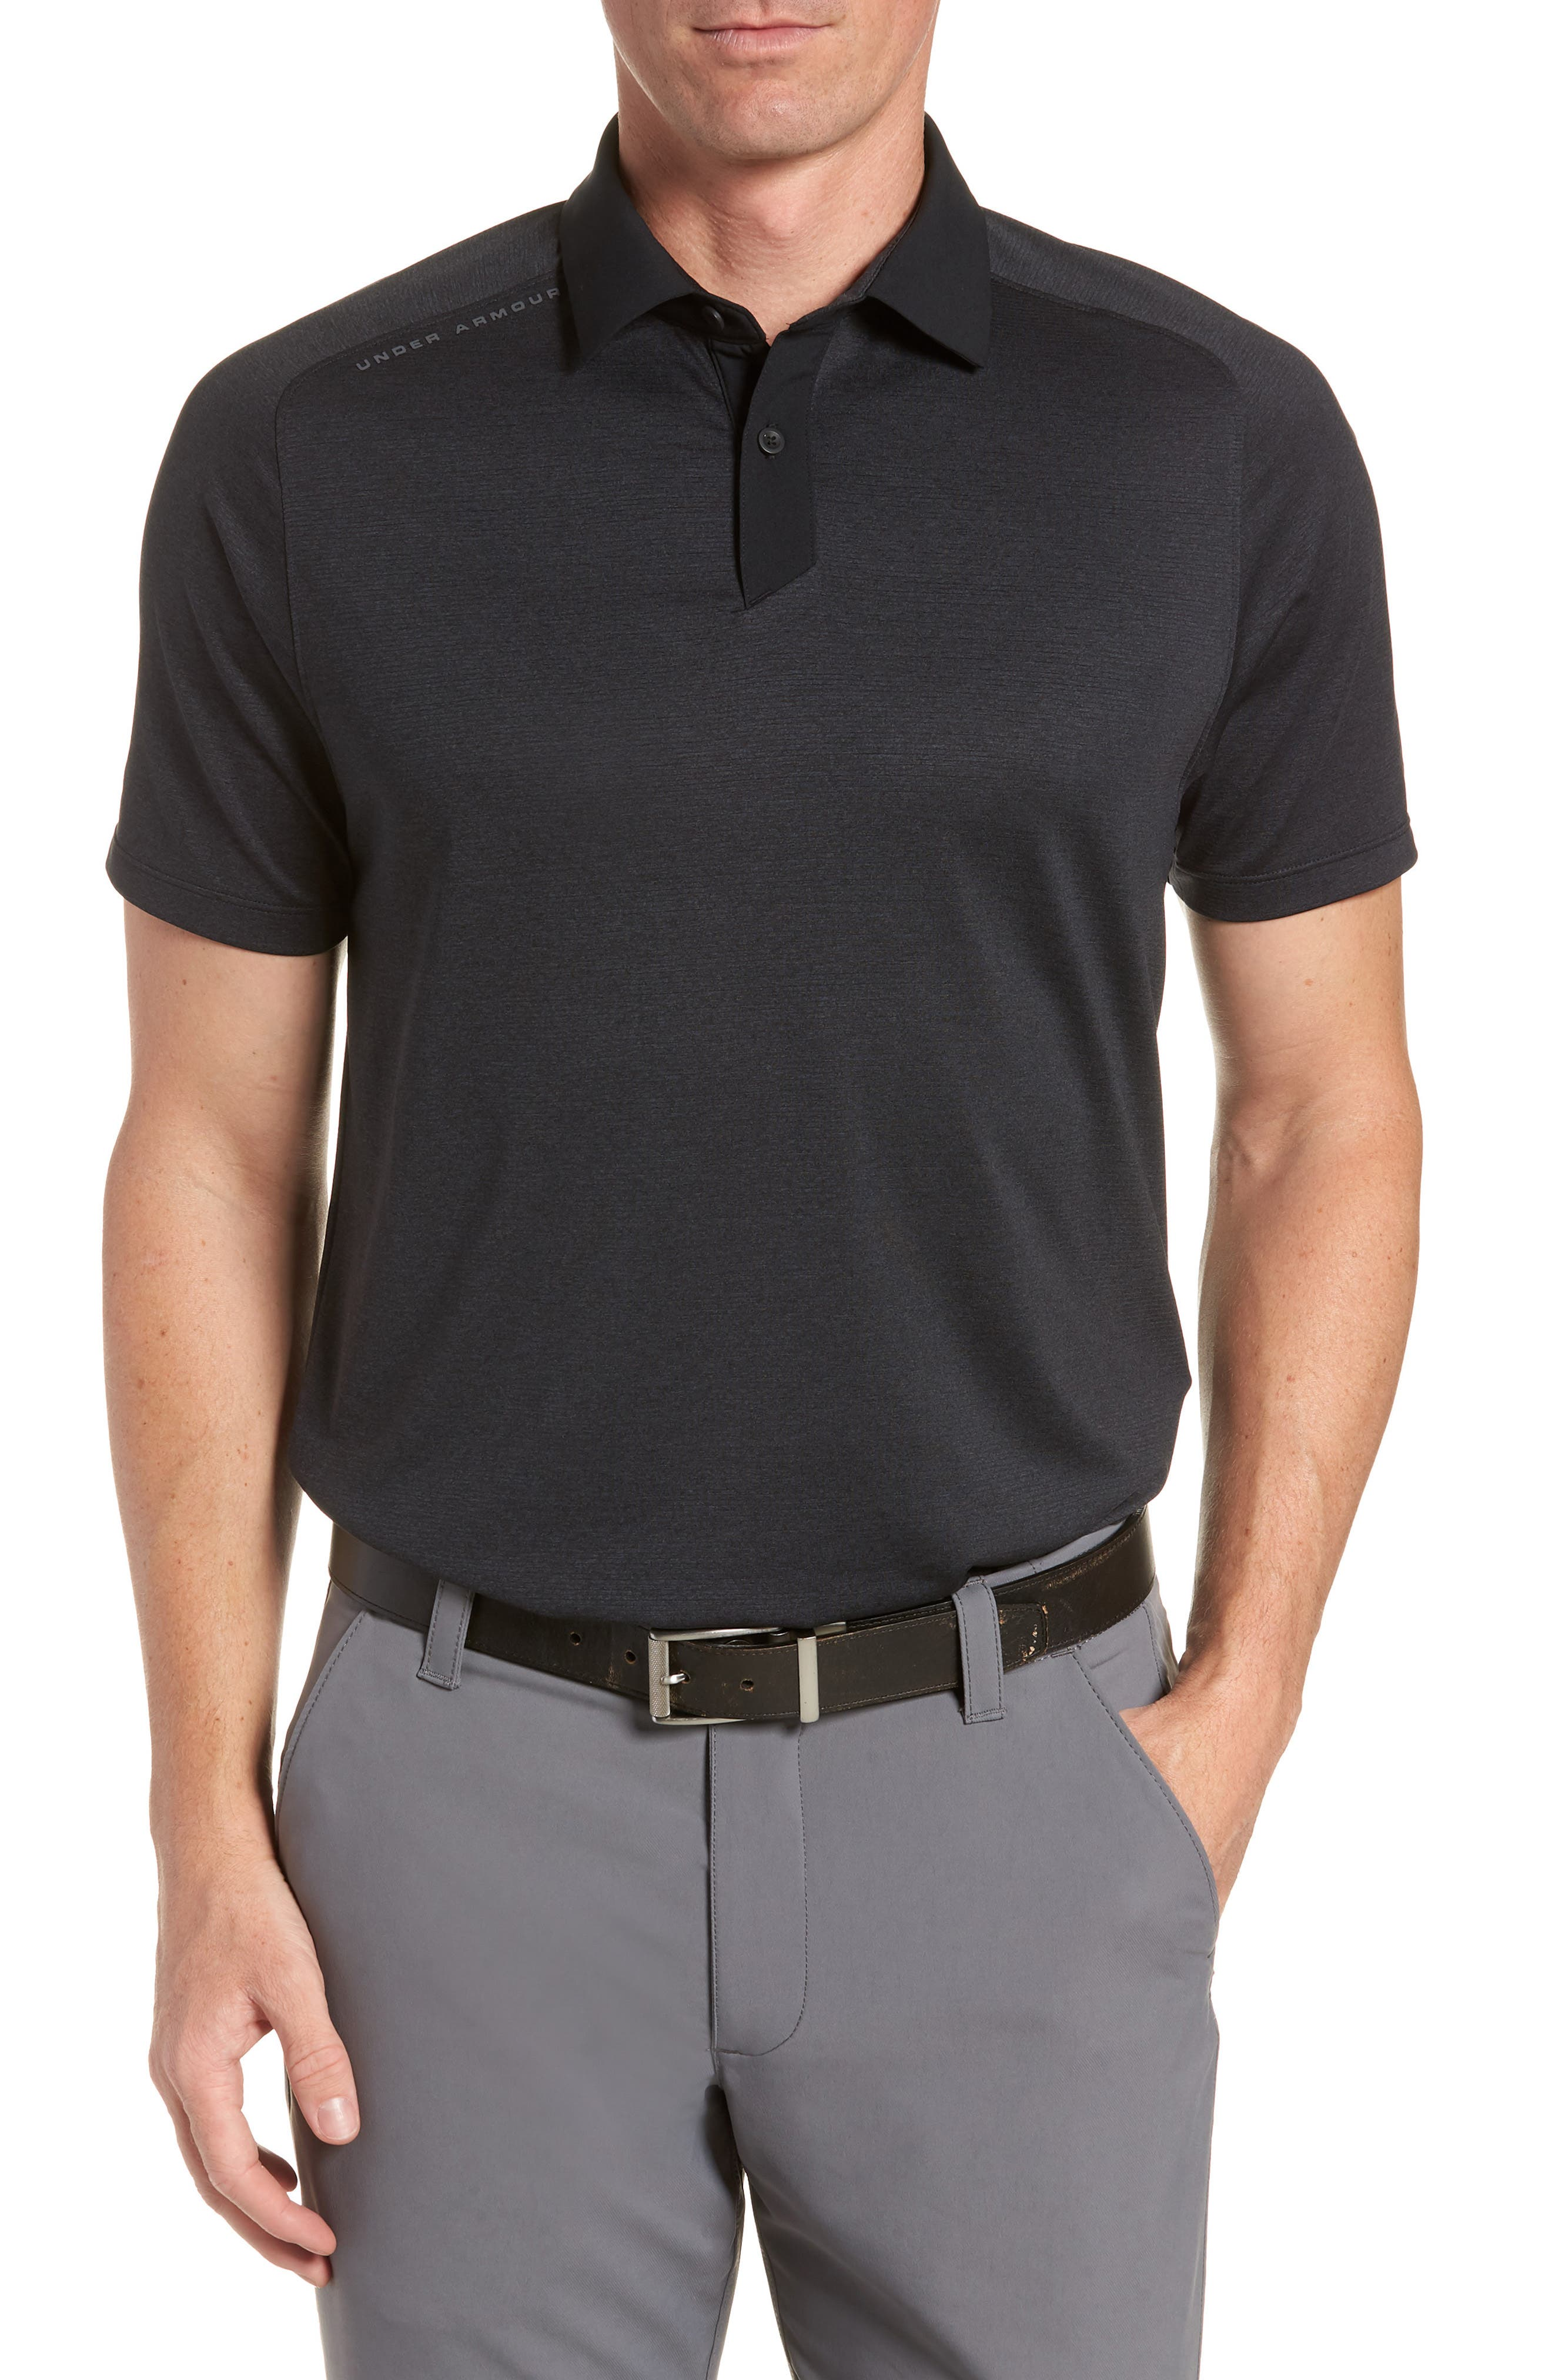 Regular Fit Threadborne Polo,                             Main thumbnail 1, color,                             001 Blk Fll Heathr Blk Wht